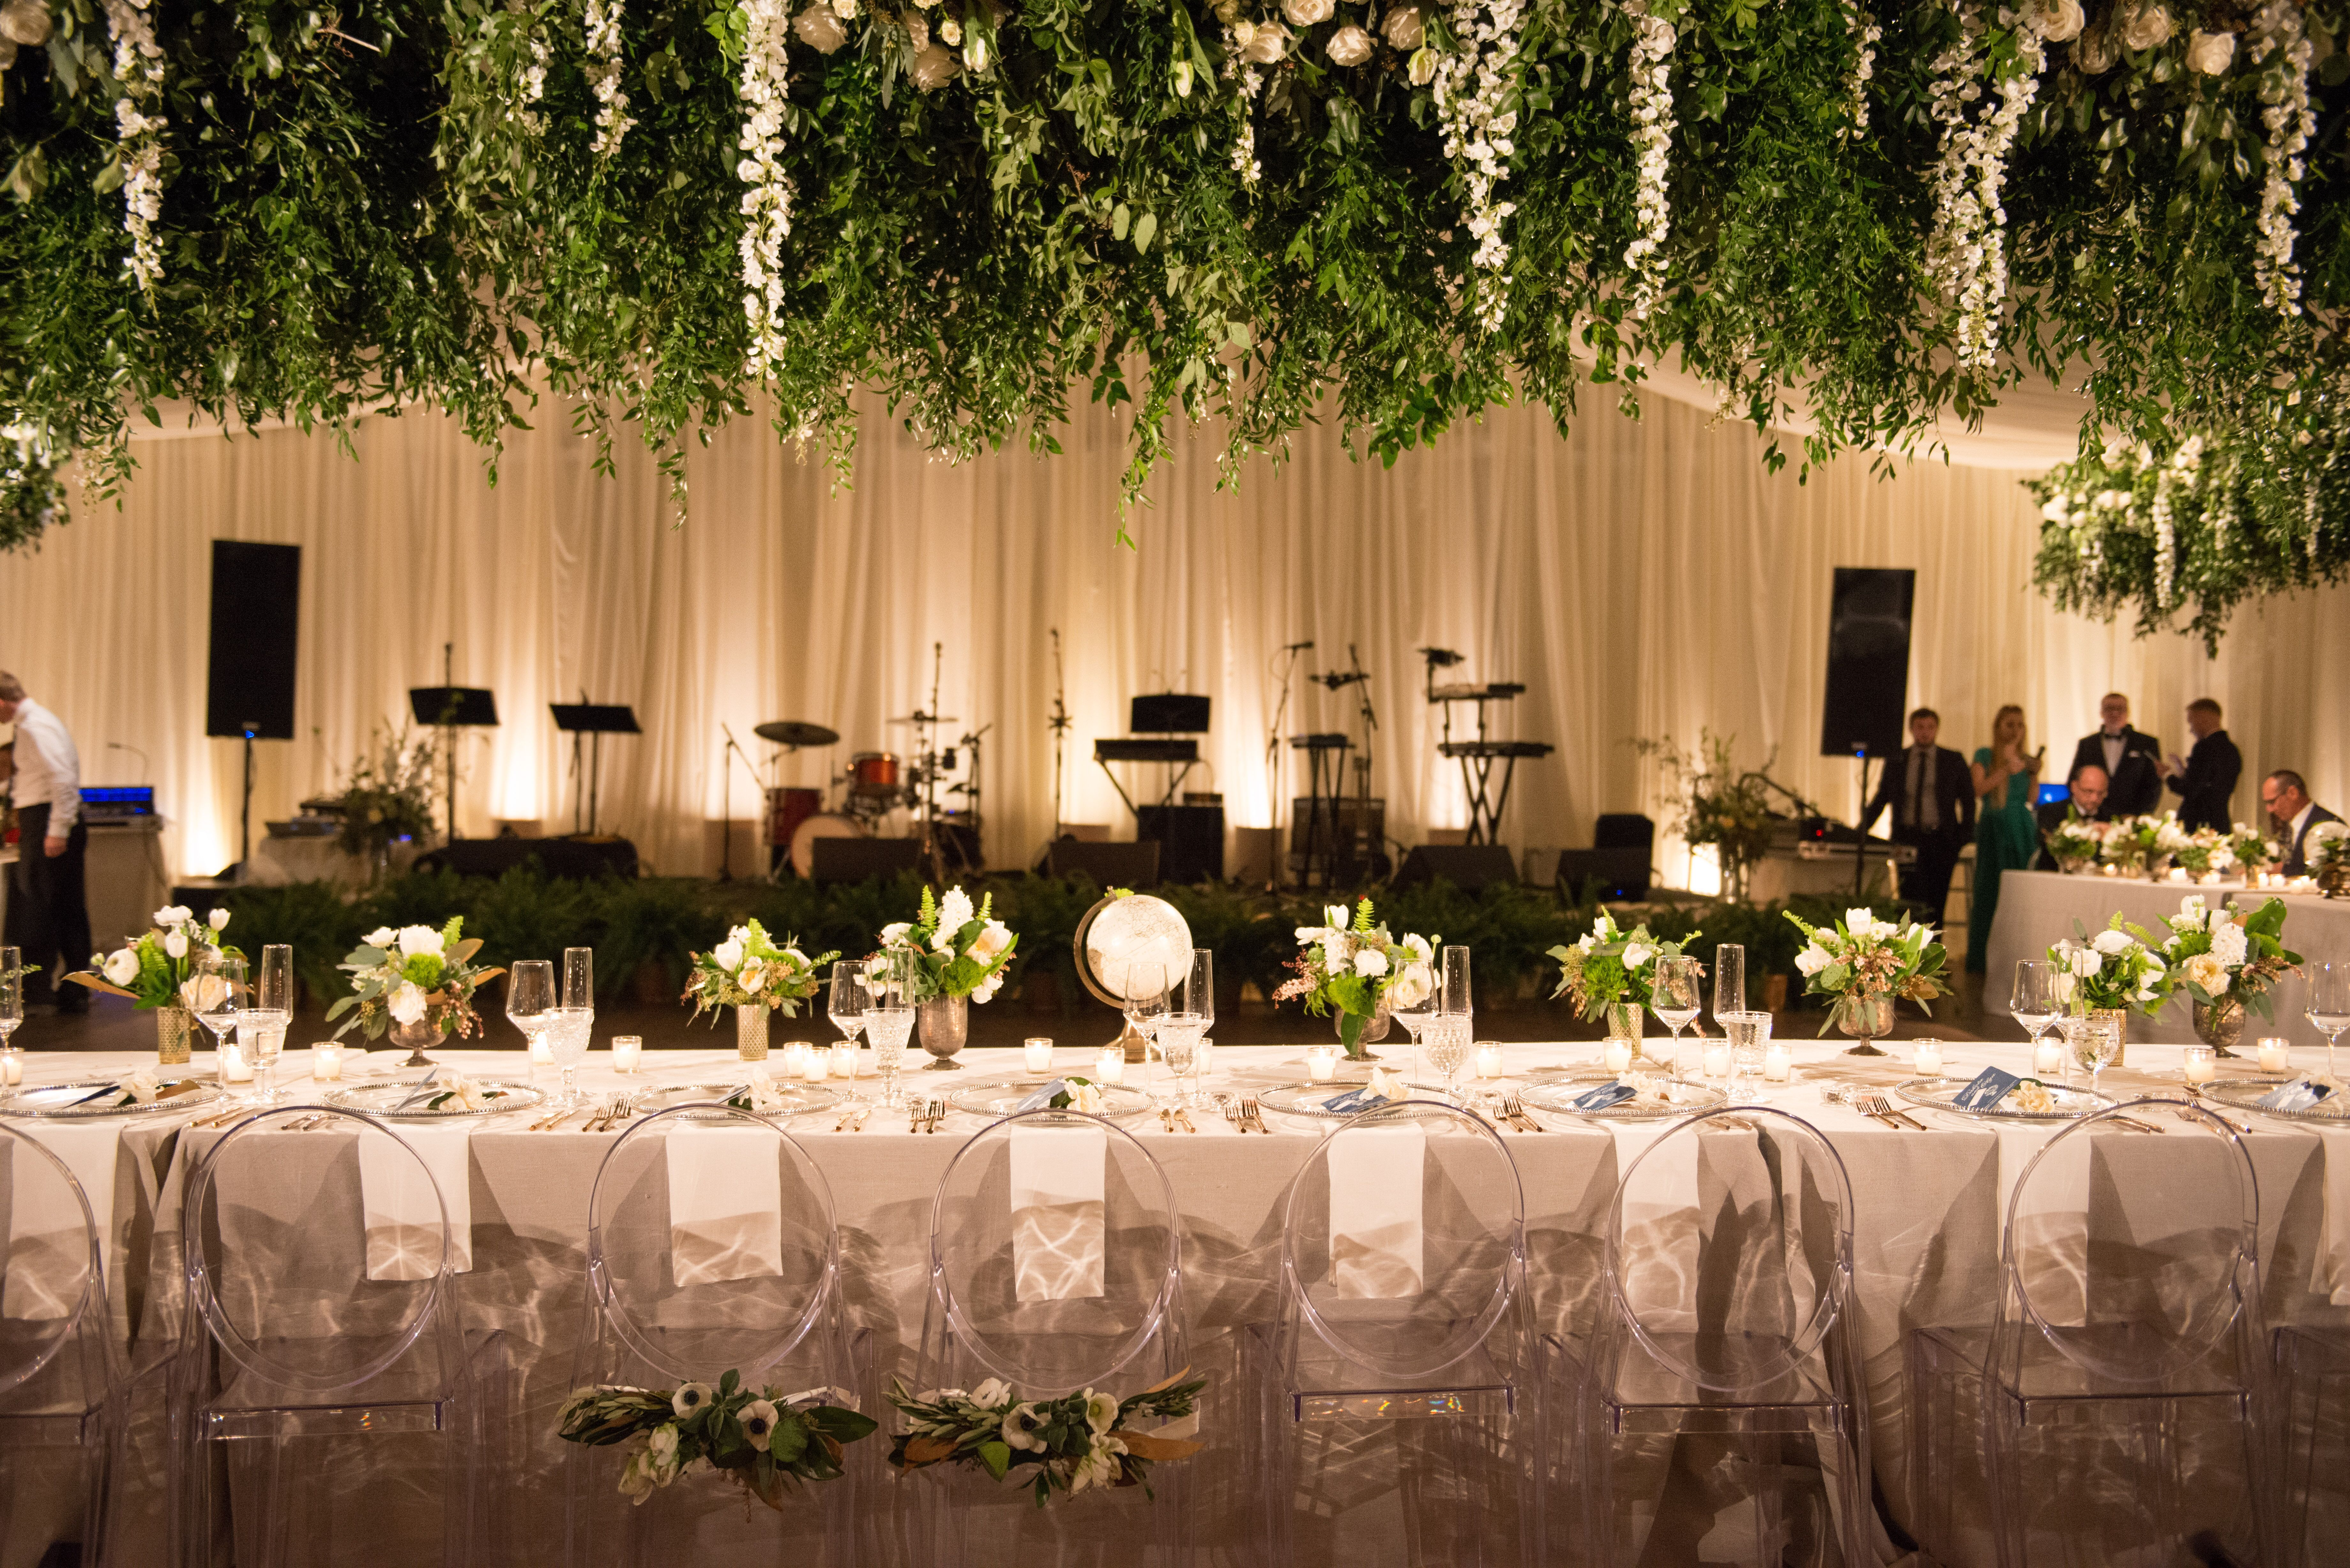 Greenery And Flowers Hanging From Ceiling